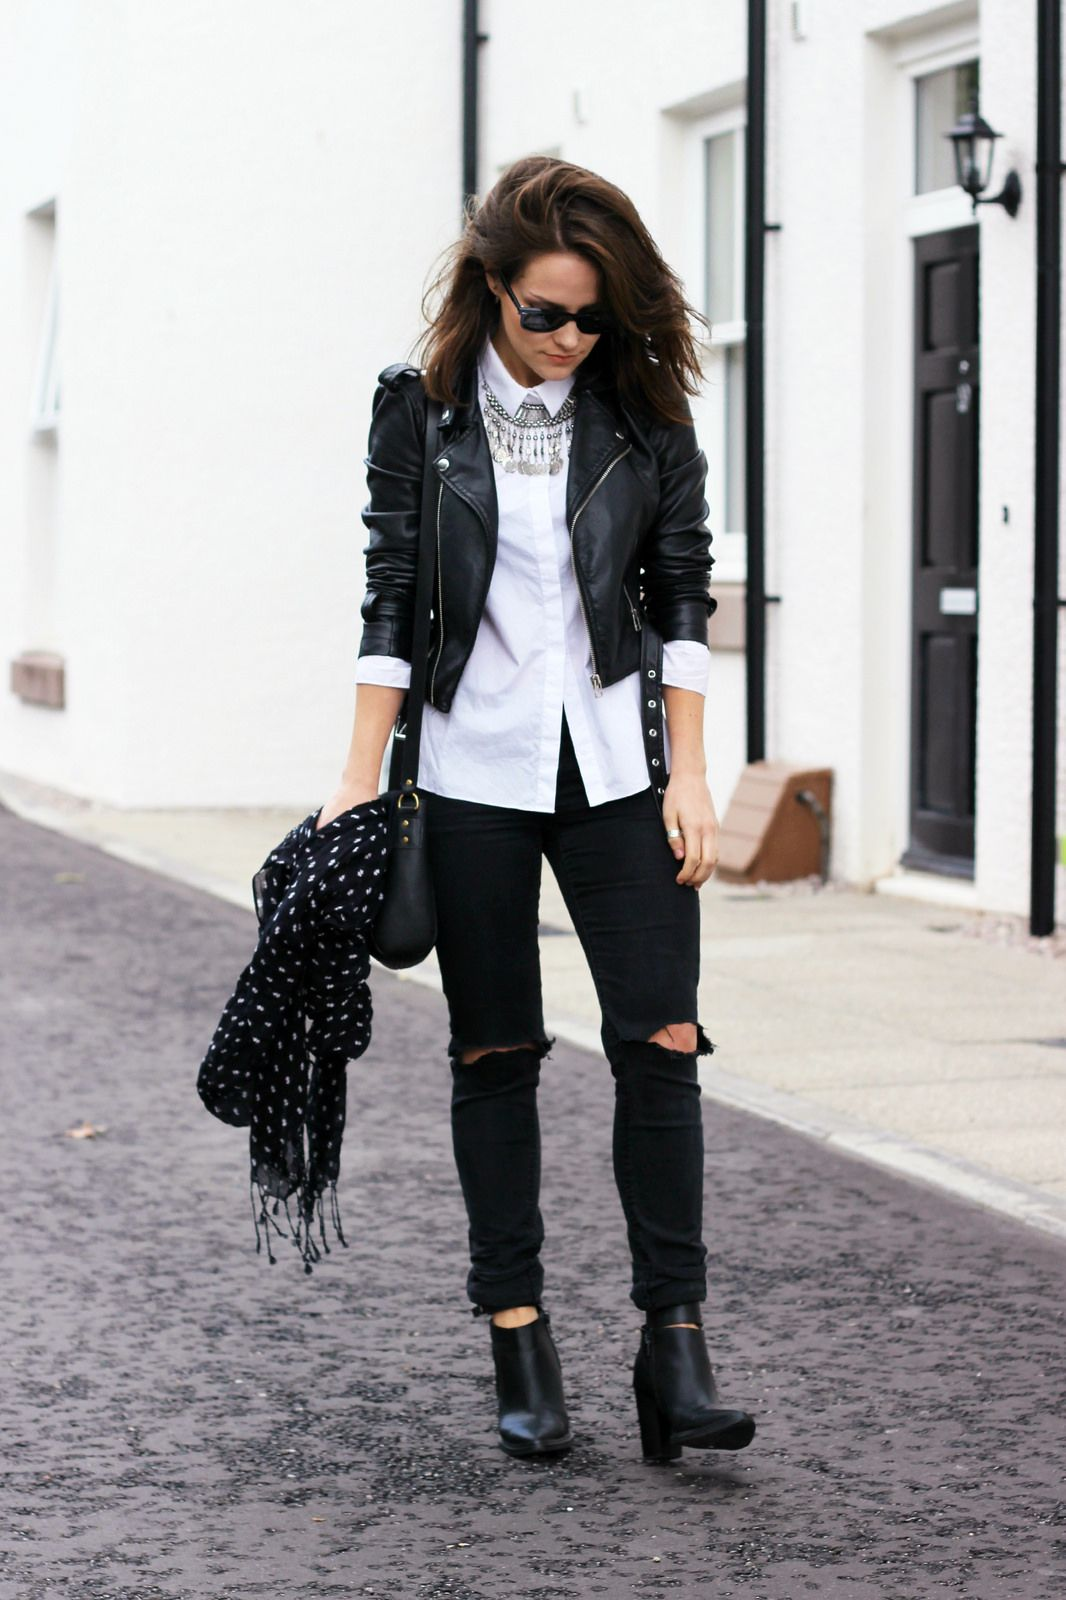 30 Outfits That'll Make You Want to Wear Black Ripped Jeans Every ...